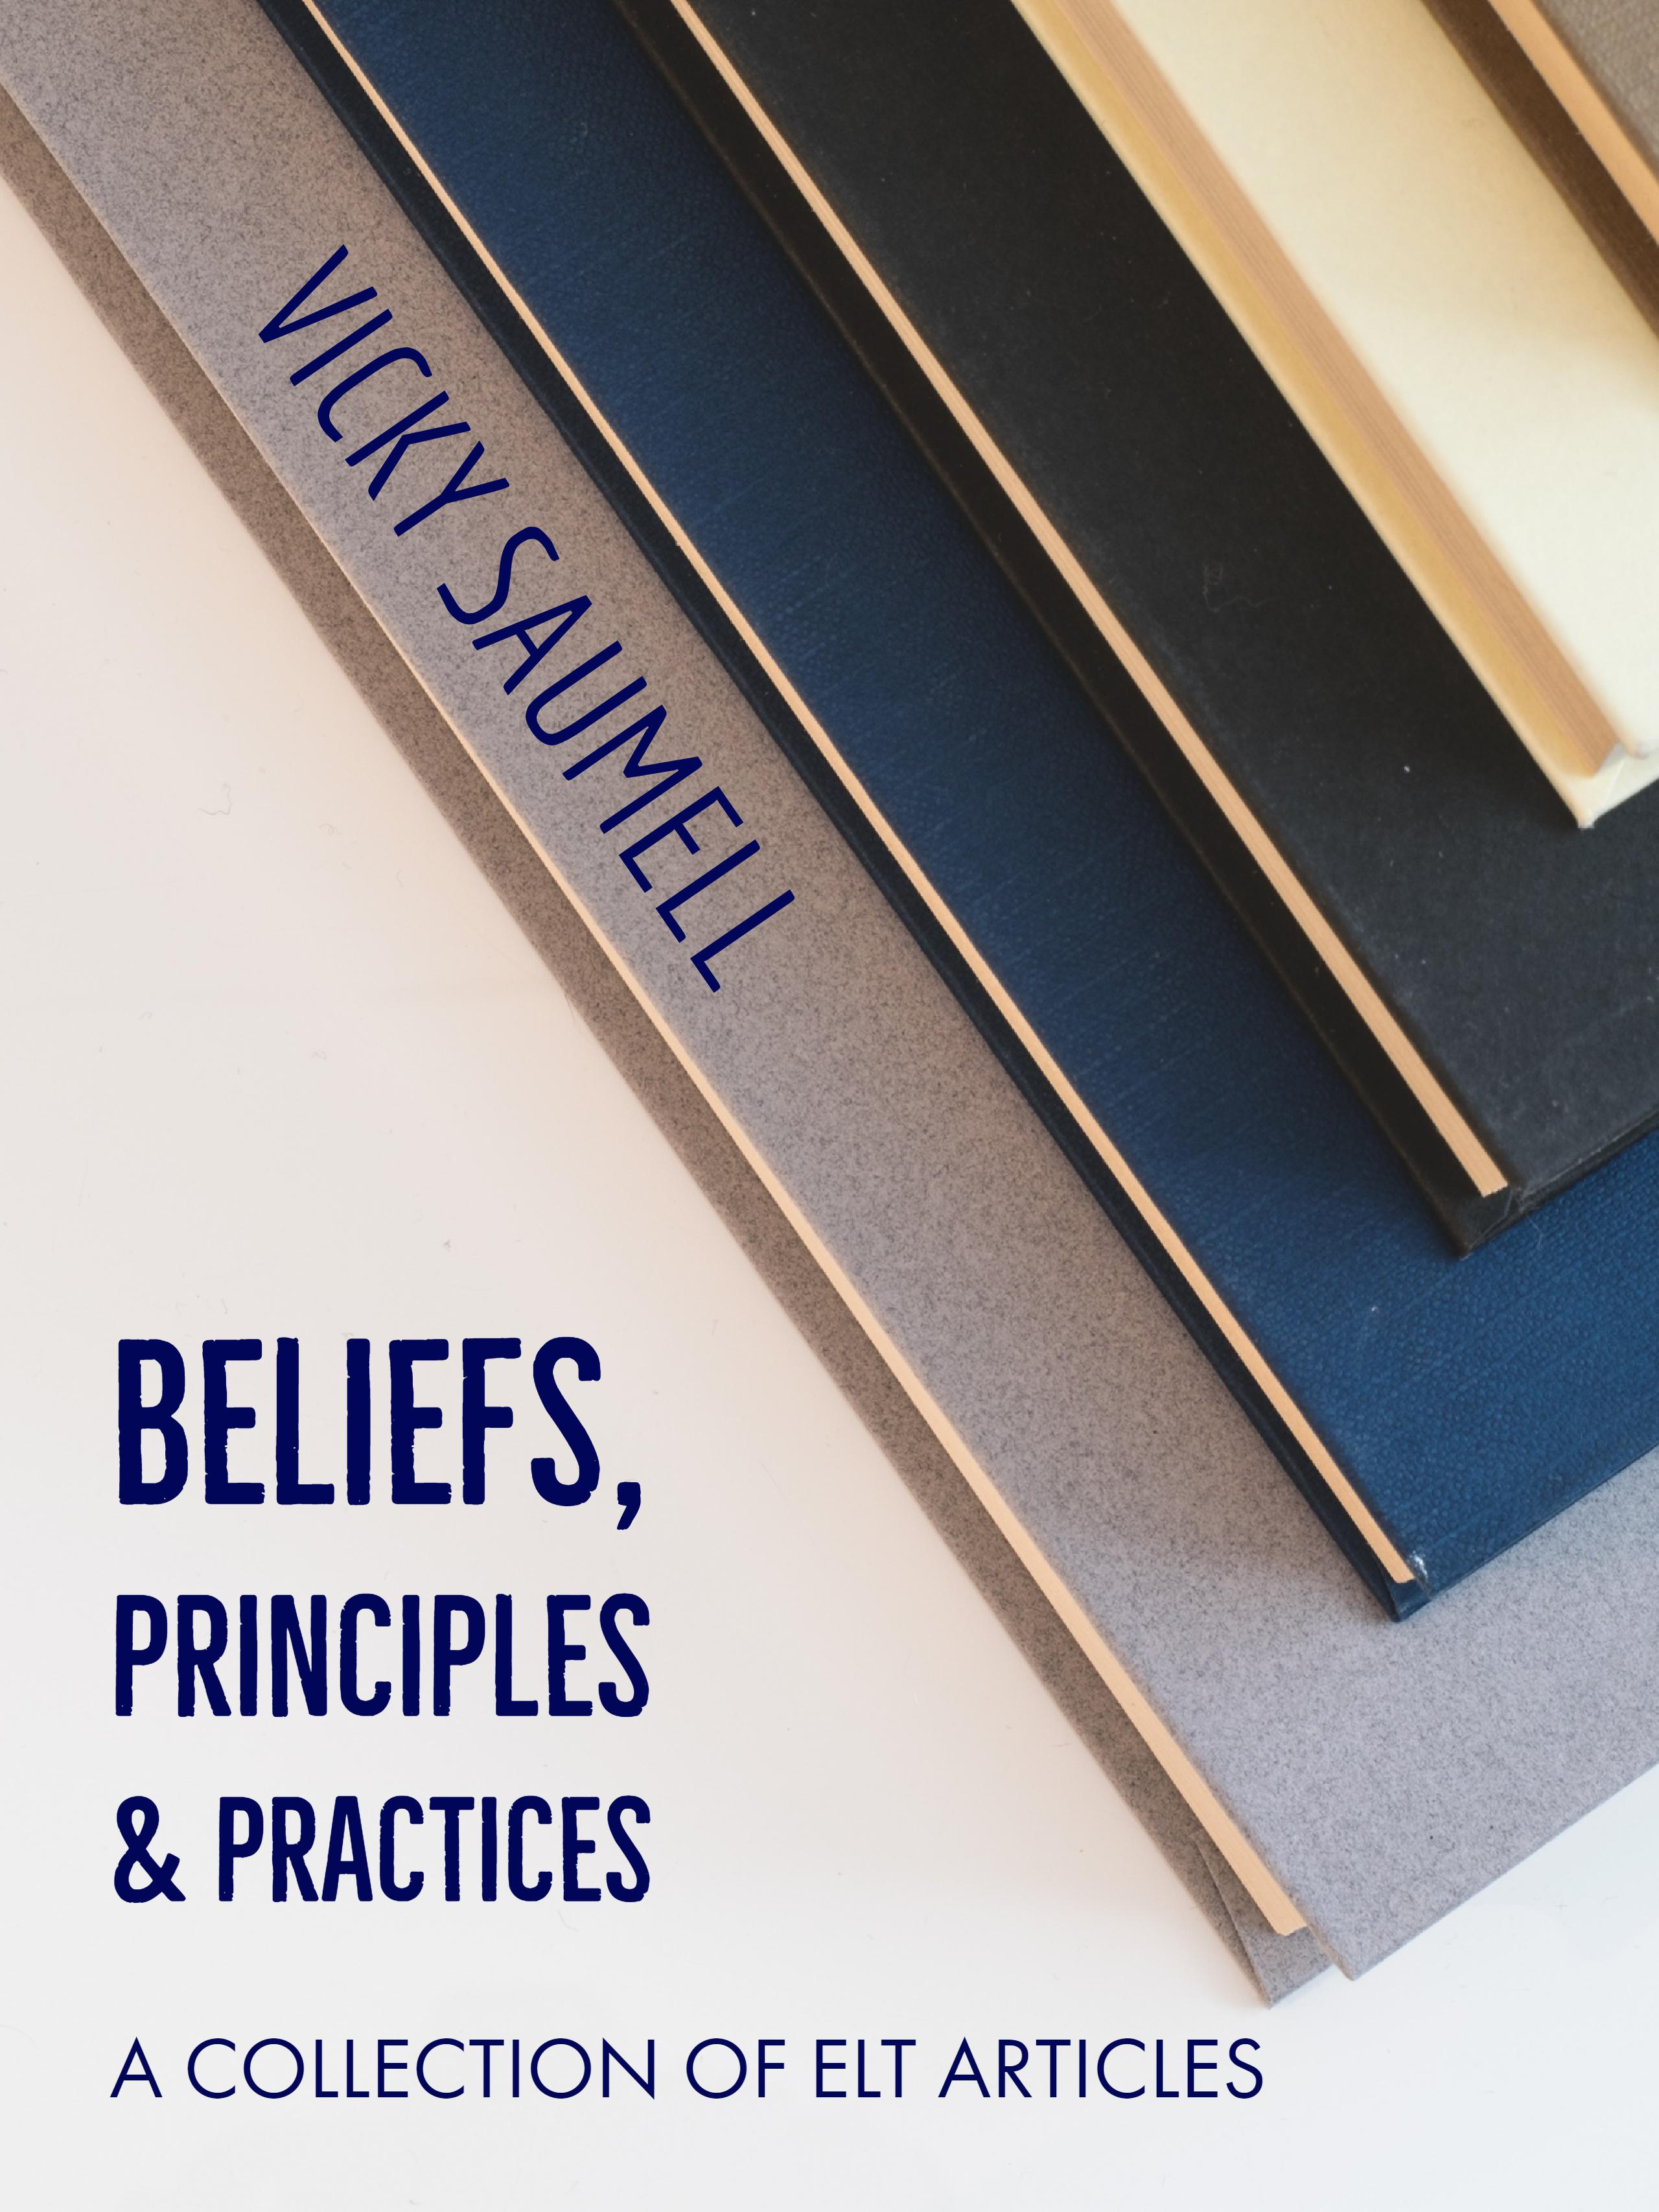 Beliefs, Principles, and Practices - A Collection of ELT Articles by Vicky Saumell